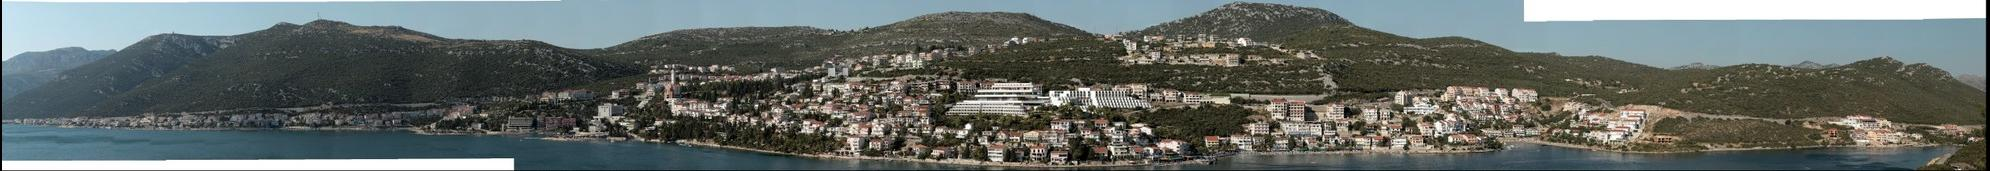 Neum Gigapixel Panorama by PRO360 SOLUTIONS - Mario Gerussi